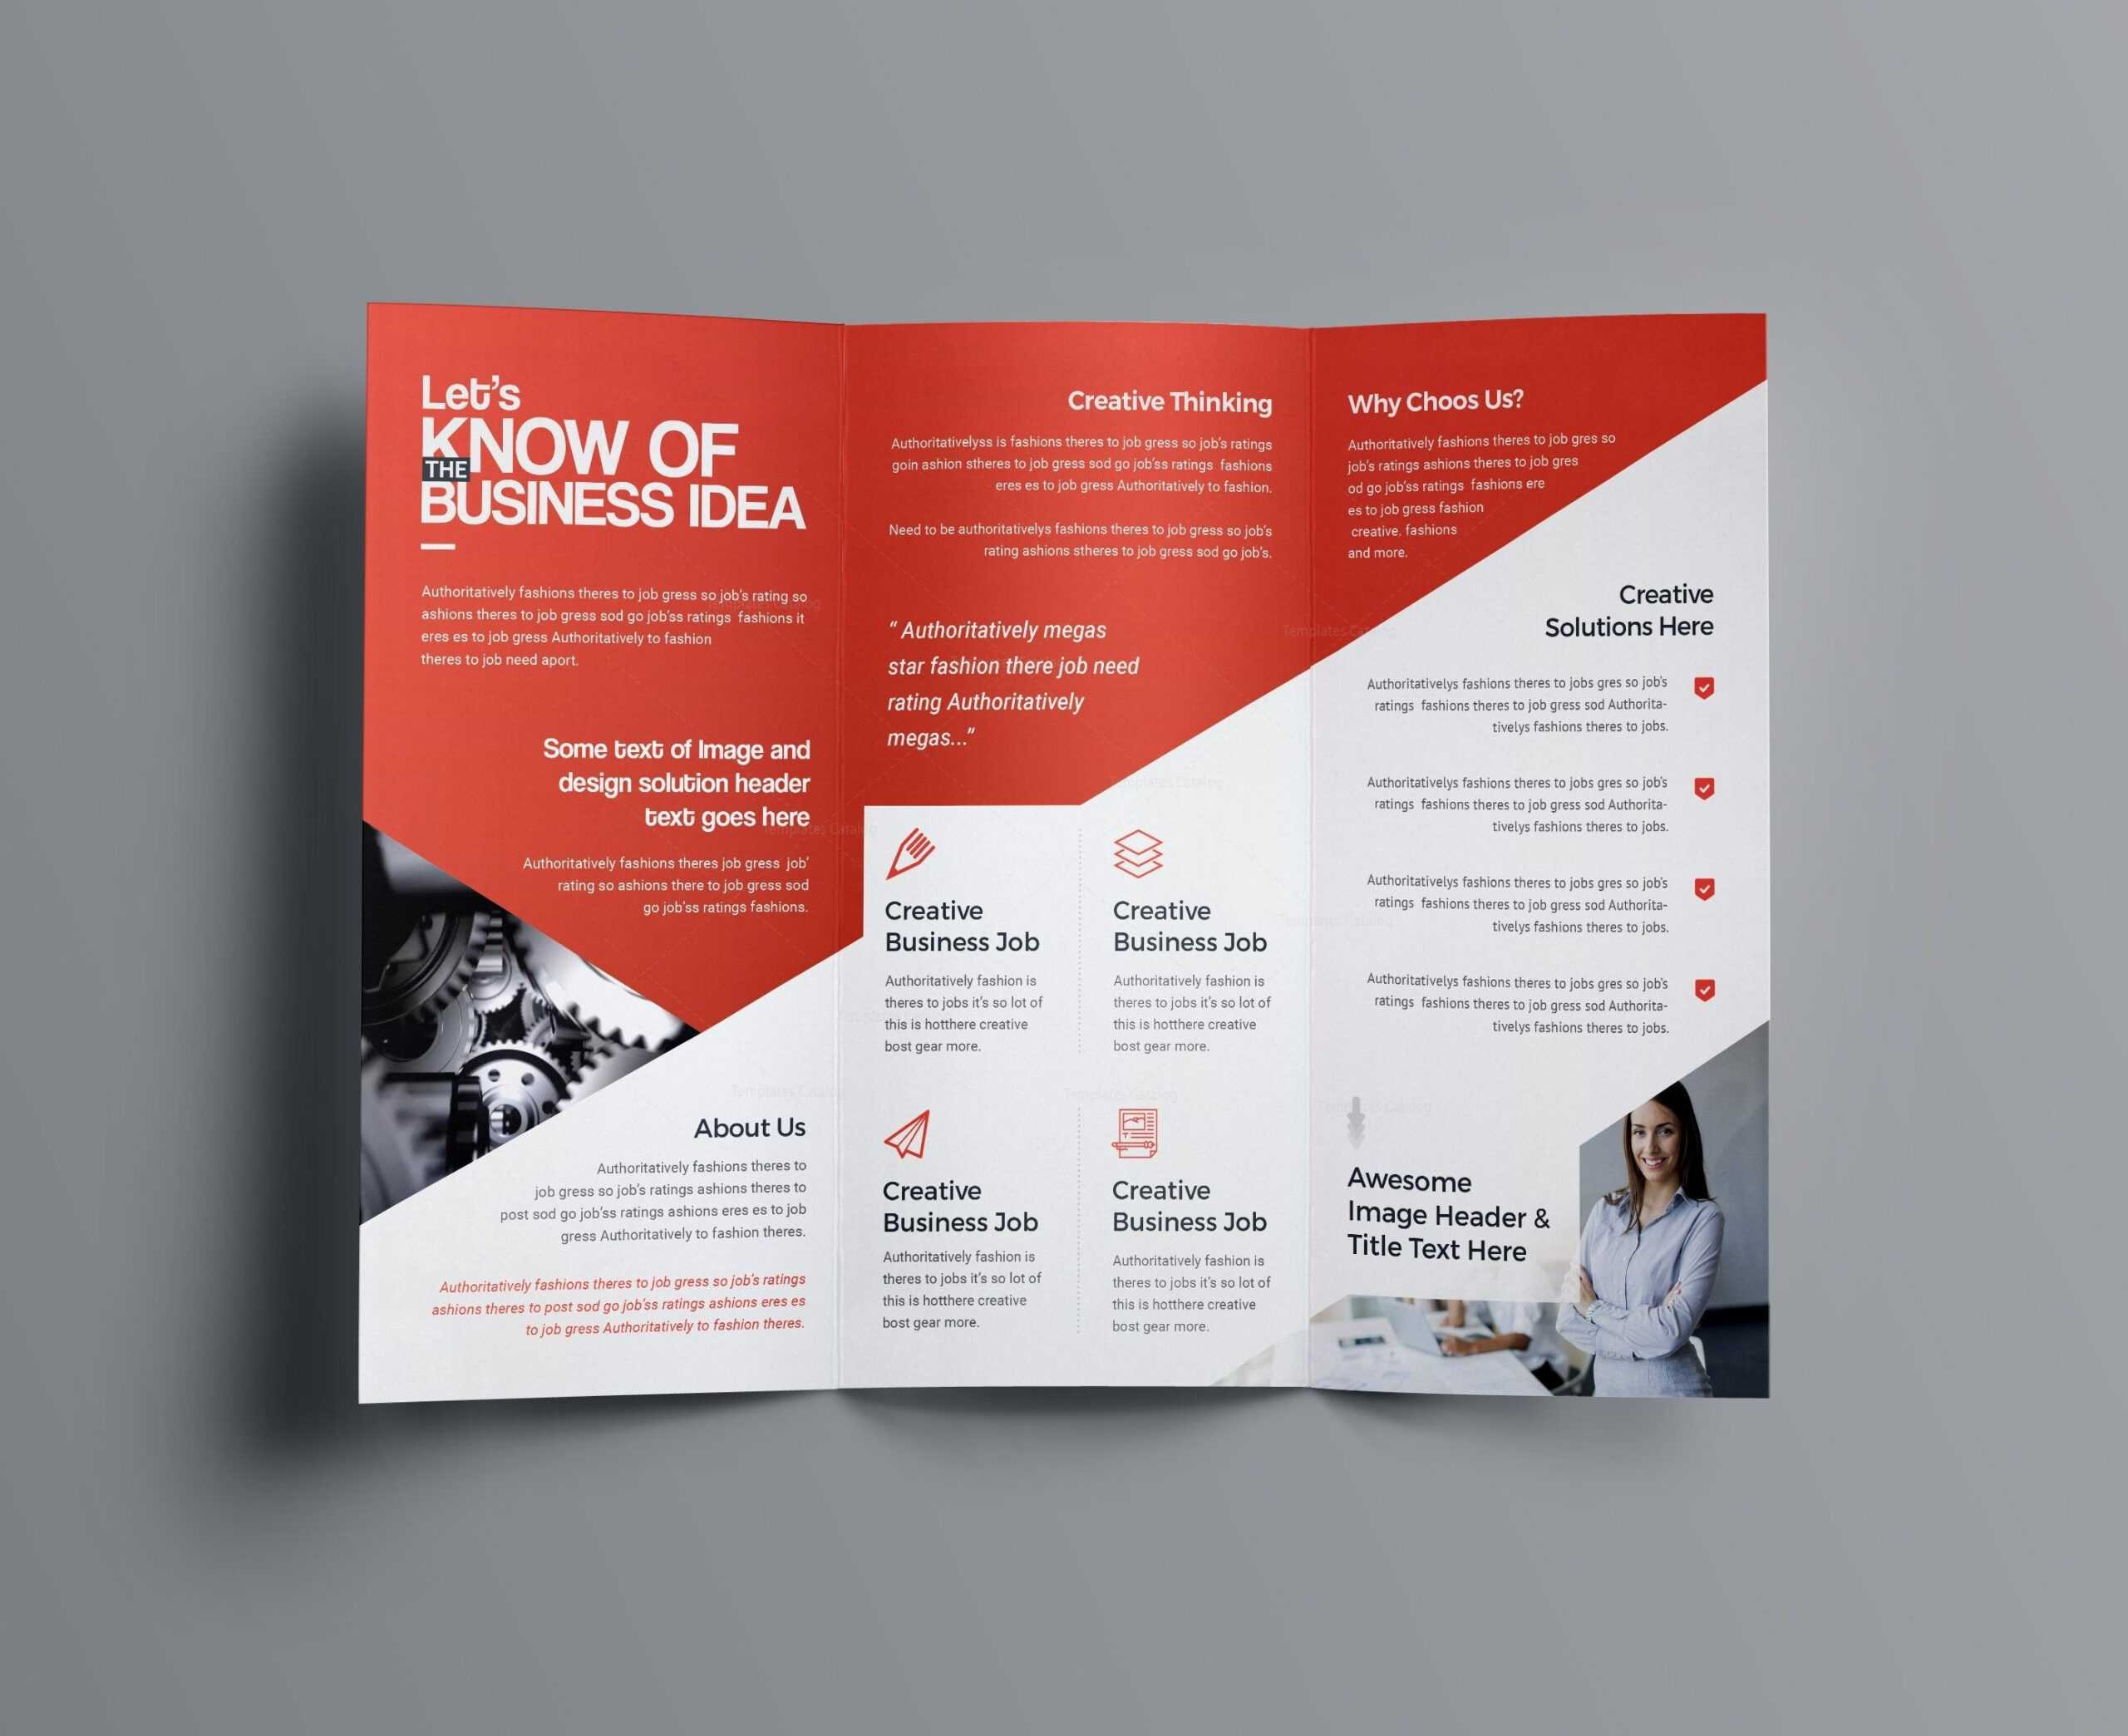 Save The Date Powerpoint Template - Carlynstudio Throughout Save The Date Powerpoint Template